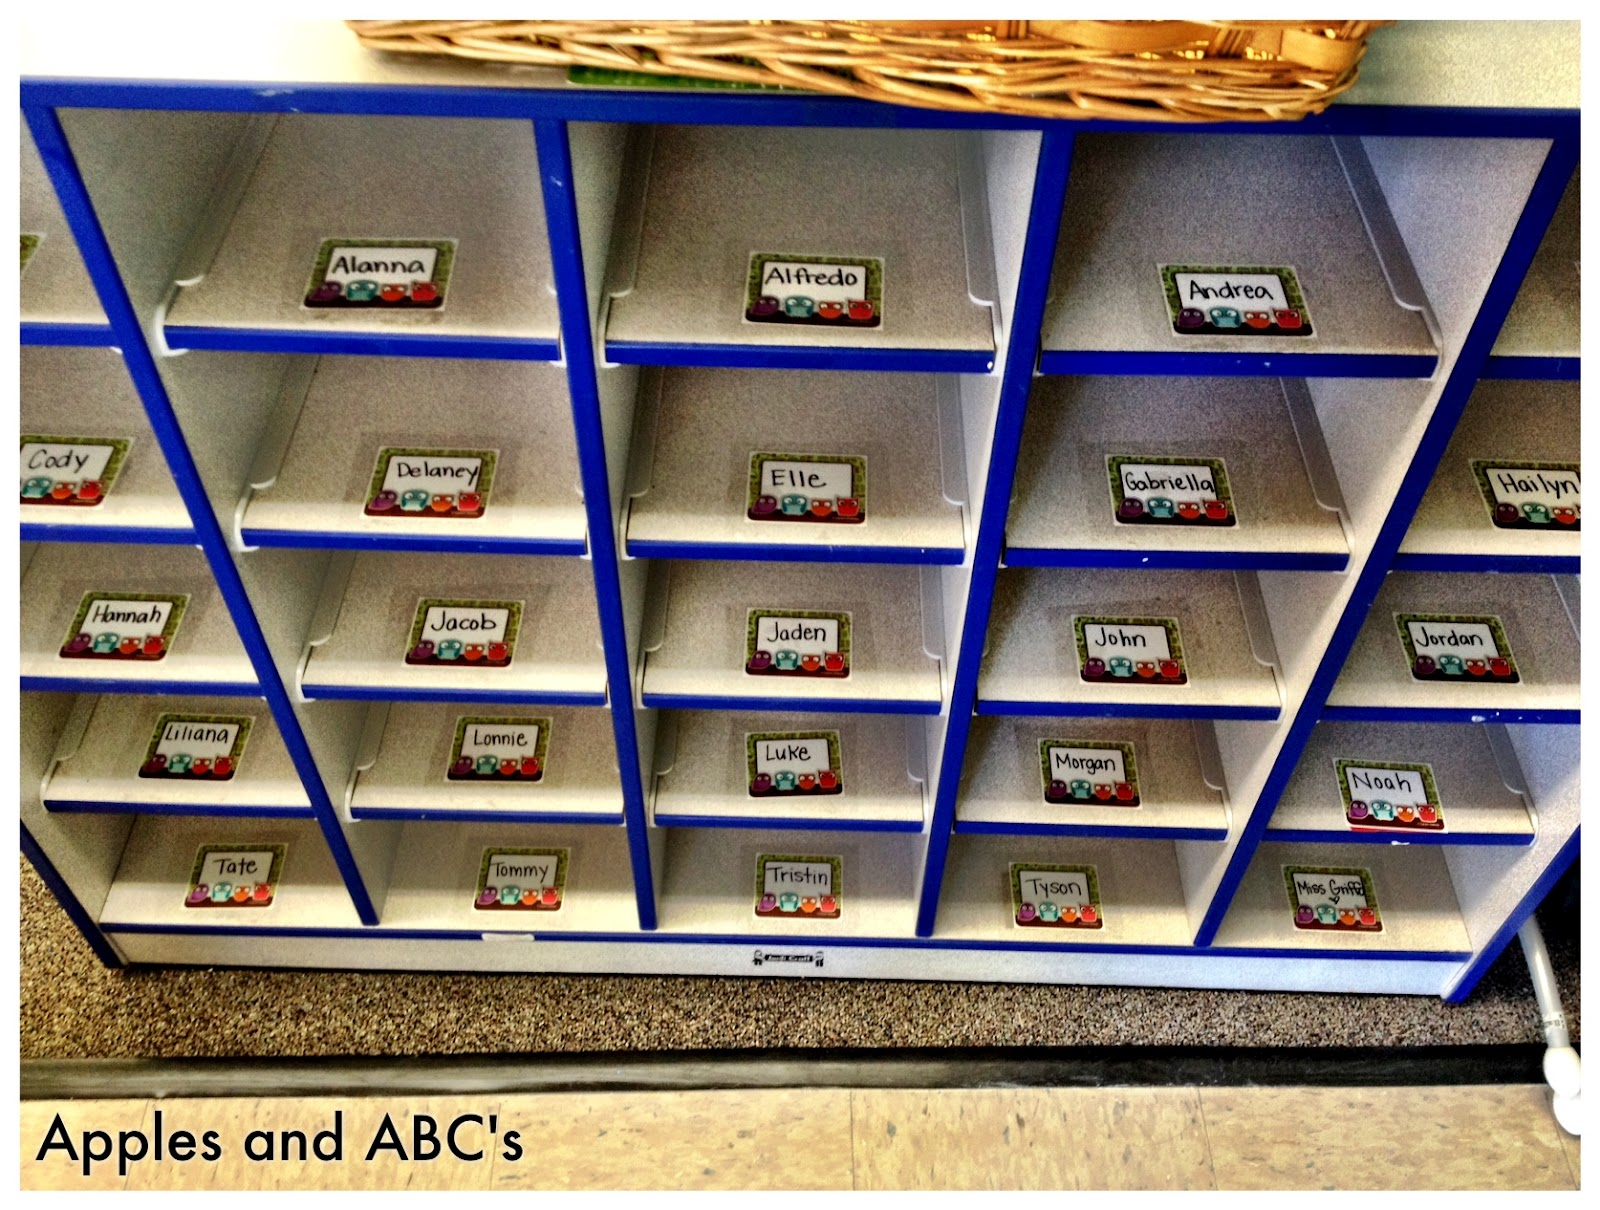 image relating to Printable Name Tags for Cubbies called Labeling the Cubbies - Apples and ABCs